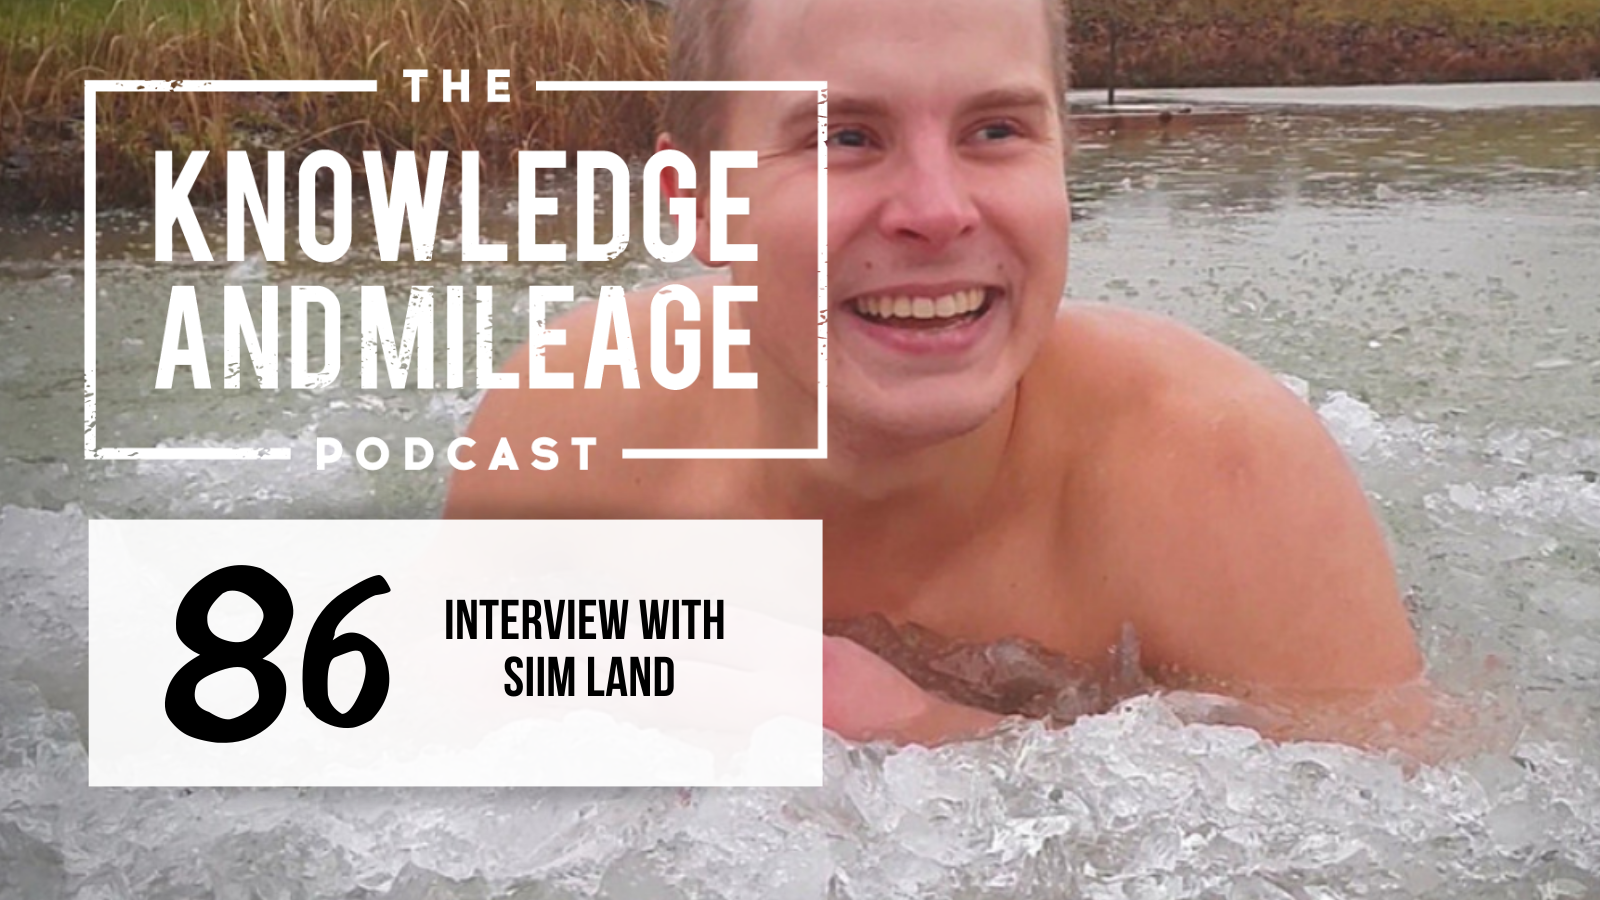 EP 86: Intermittent Fasting - Bridging the Gap Between Bodybuilding and Longevity with Siim Land